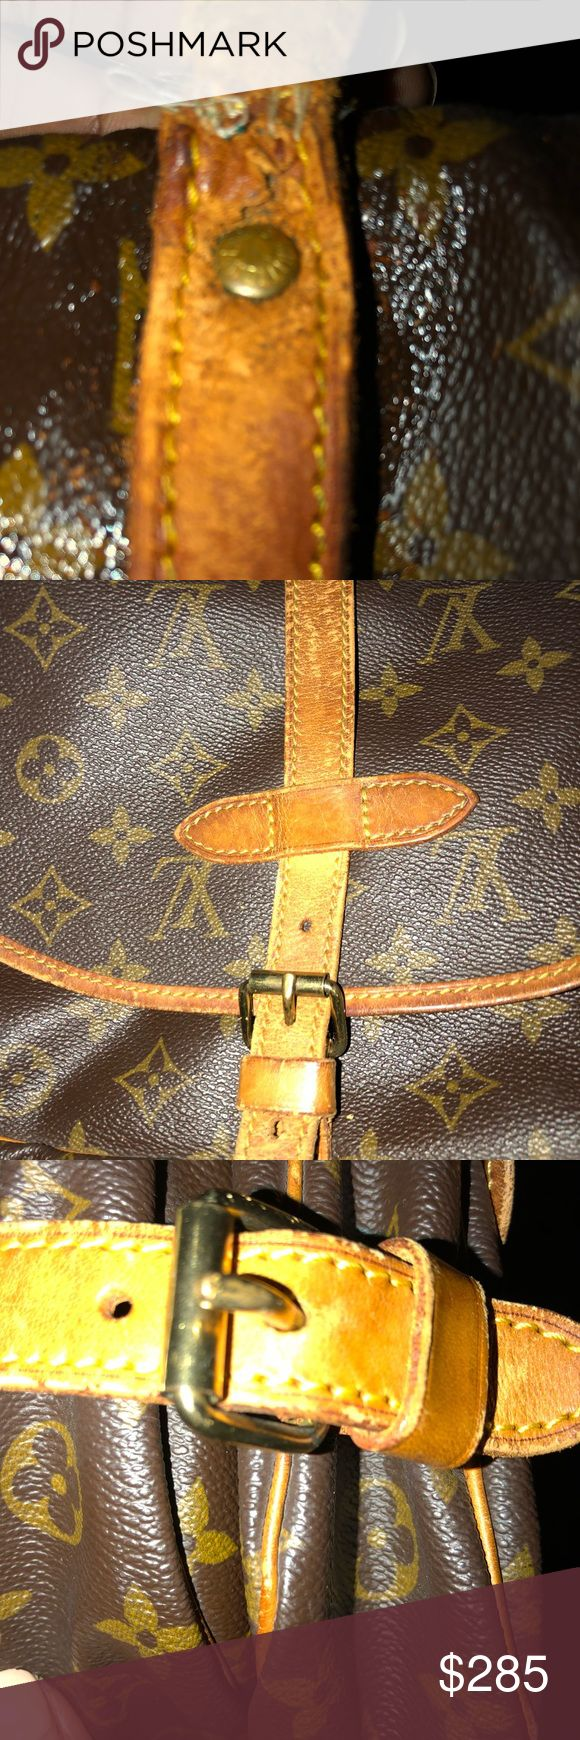 Louis Vuitton Saumur 30 gently loved pre owned Louis Vuitton Saumur 30 **A DEAL**! This bag is gently loved. I have repaired the handle that was pulling away from the seems. I have included a pic. You can not see this unless you really look for it while the bag is open (has two sides)   These bags are popular and this price is very low for this type of bag. Louis Vuitton Bags Crossbody Bags